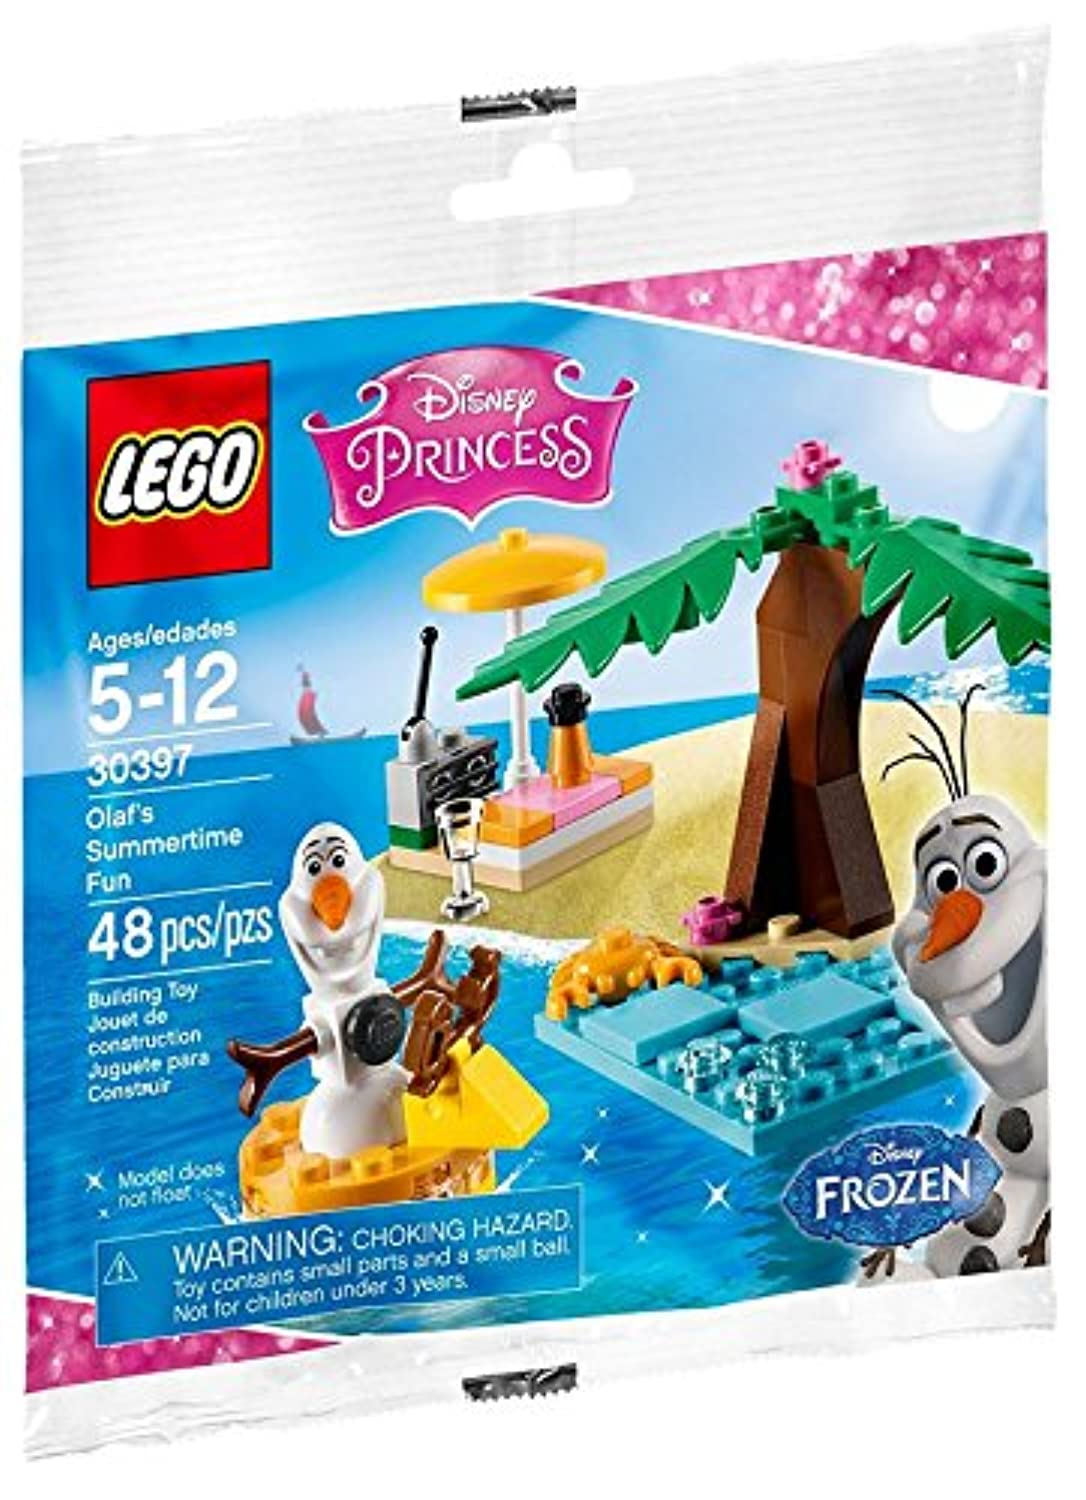 LEGO Olaf's Summertime Fun 30397 polybag